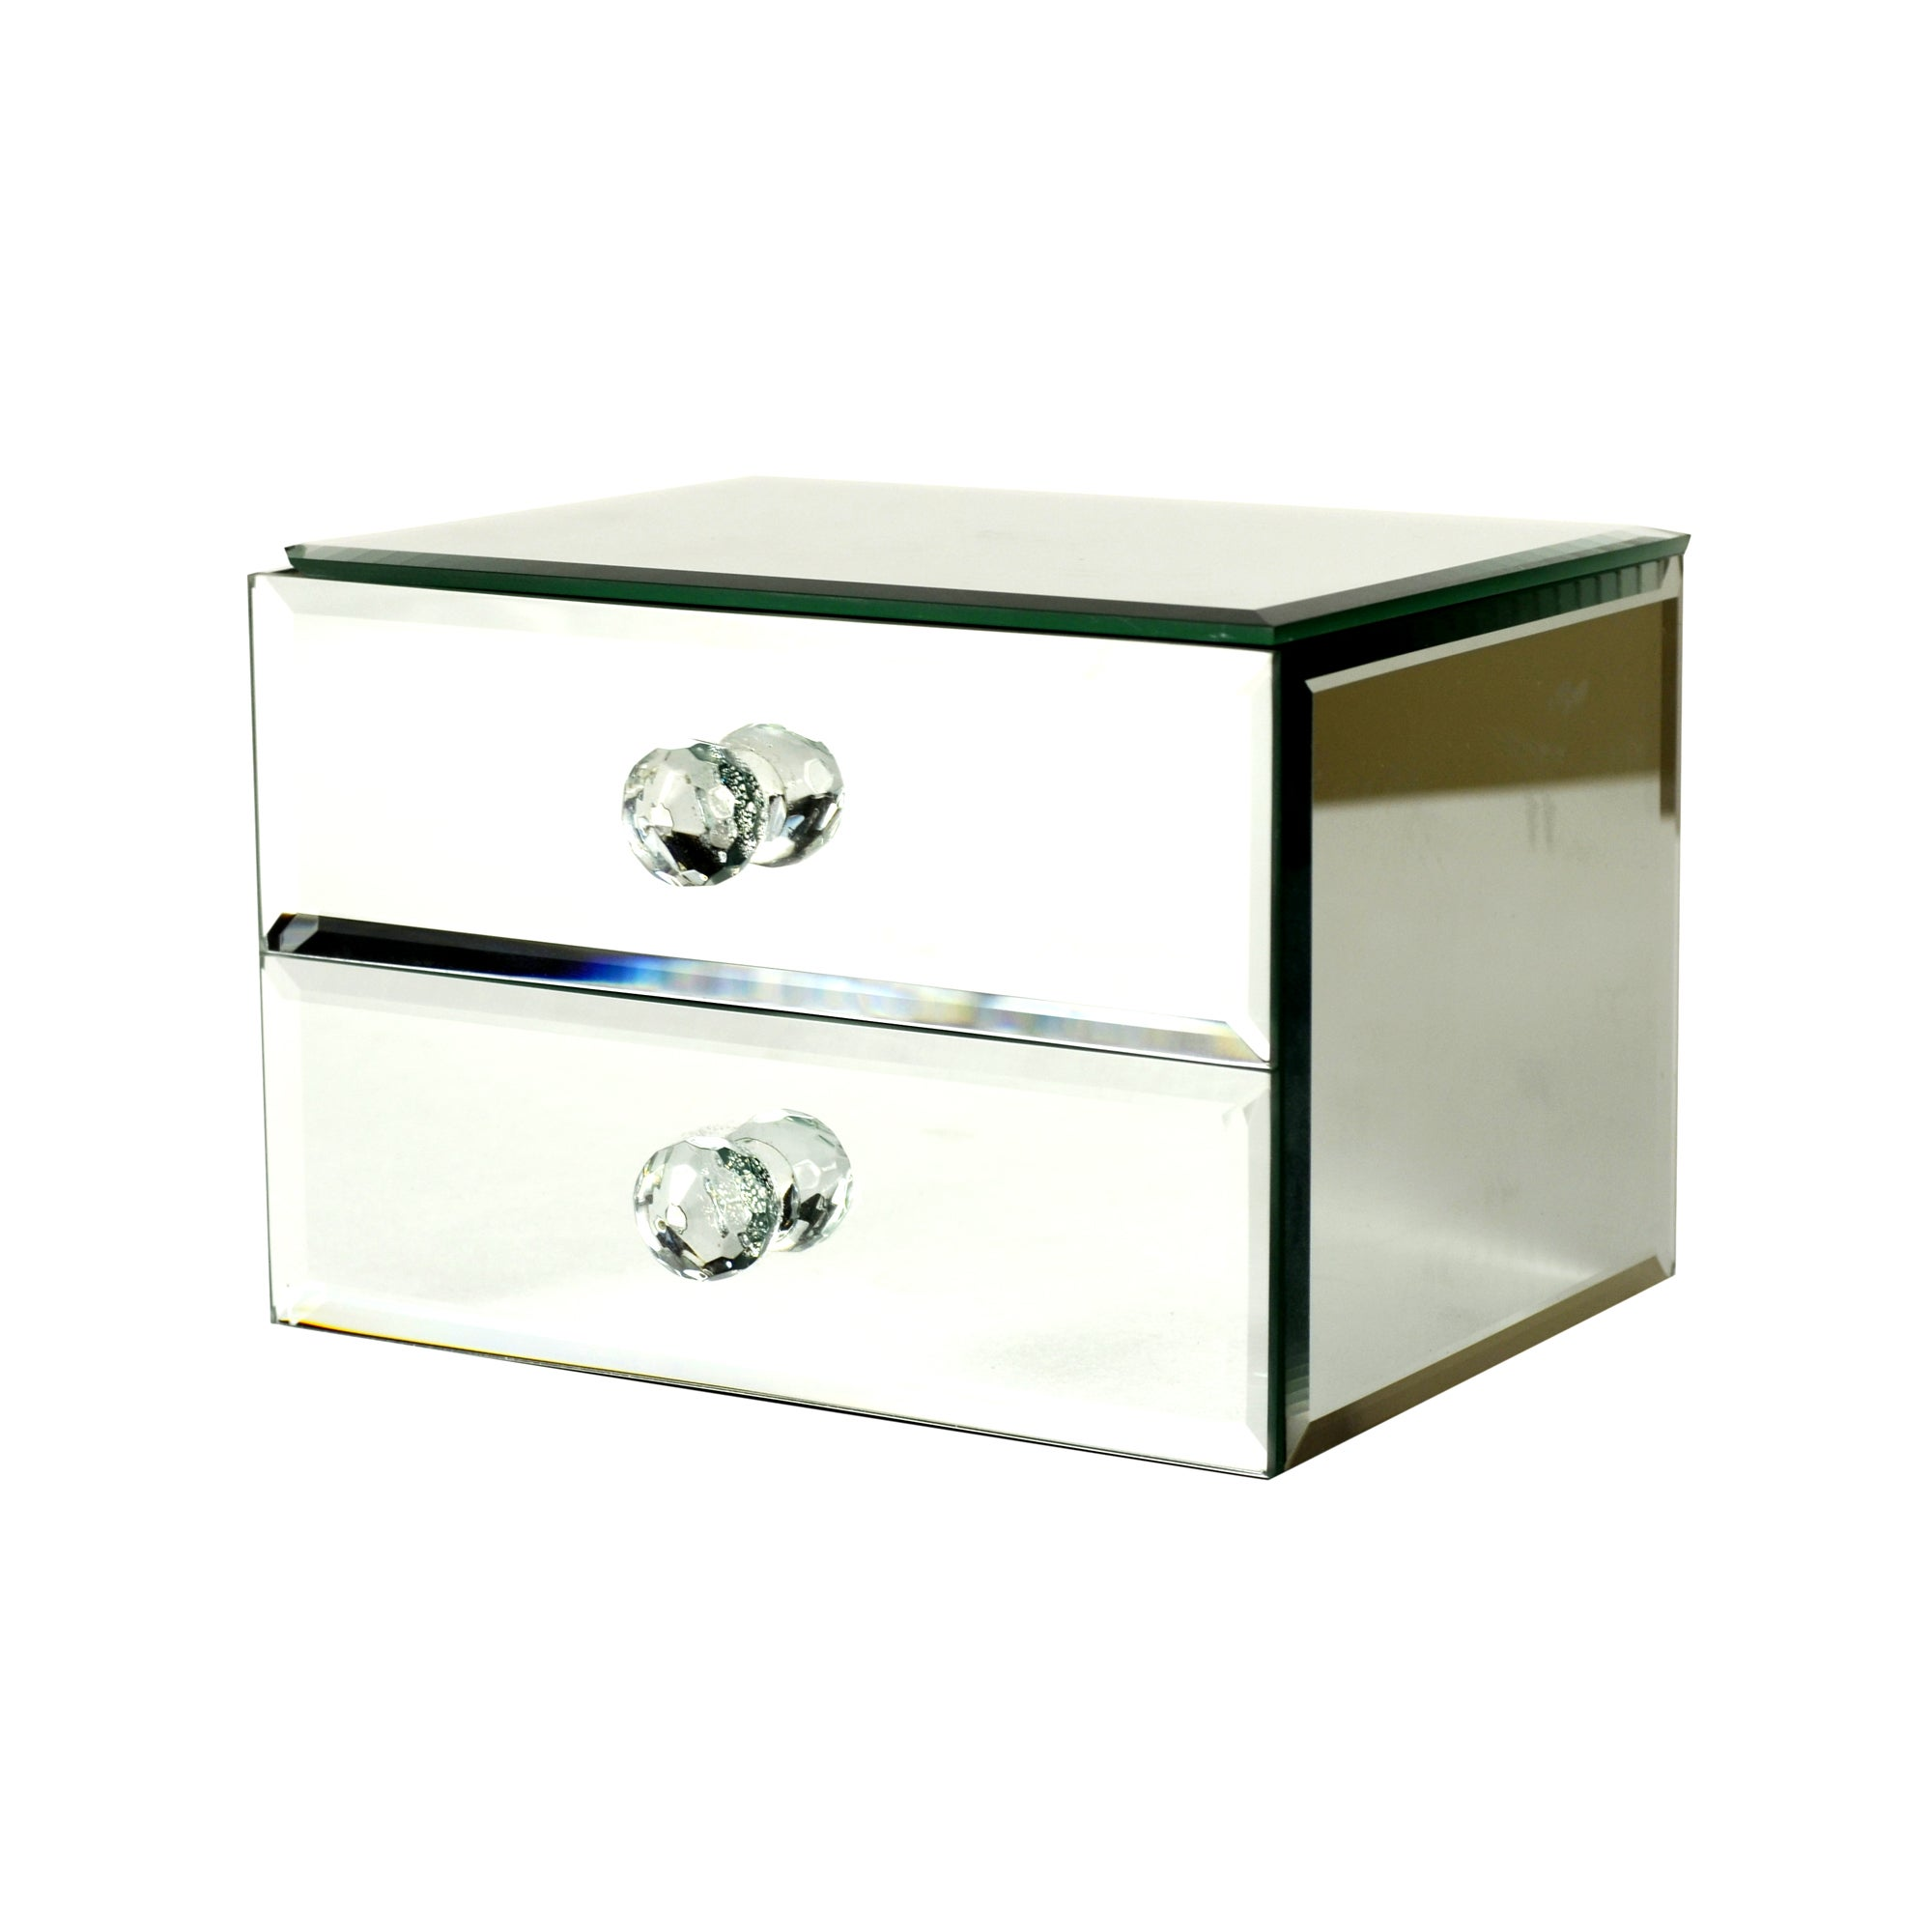 Blue deco collection mirrored jewellery box for Mirror jewellery box